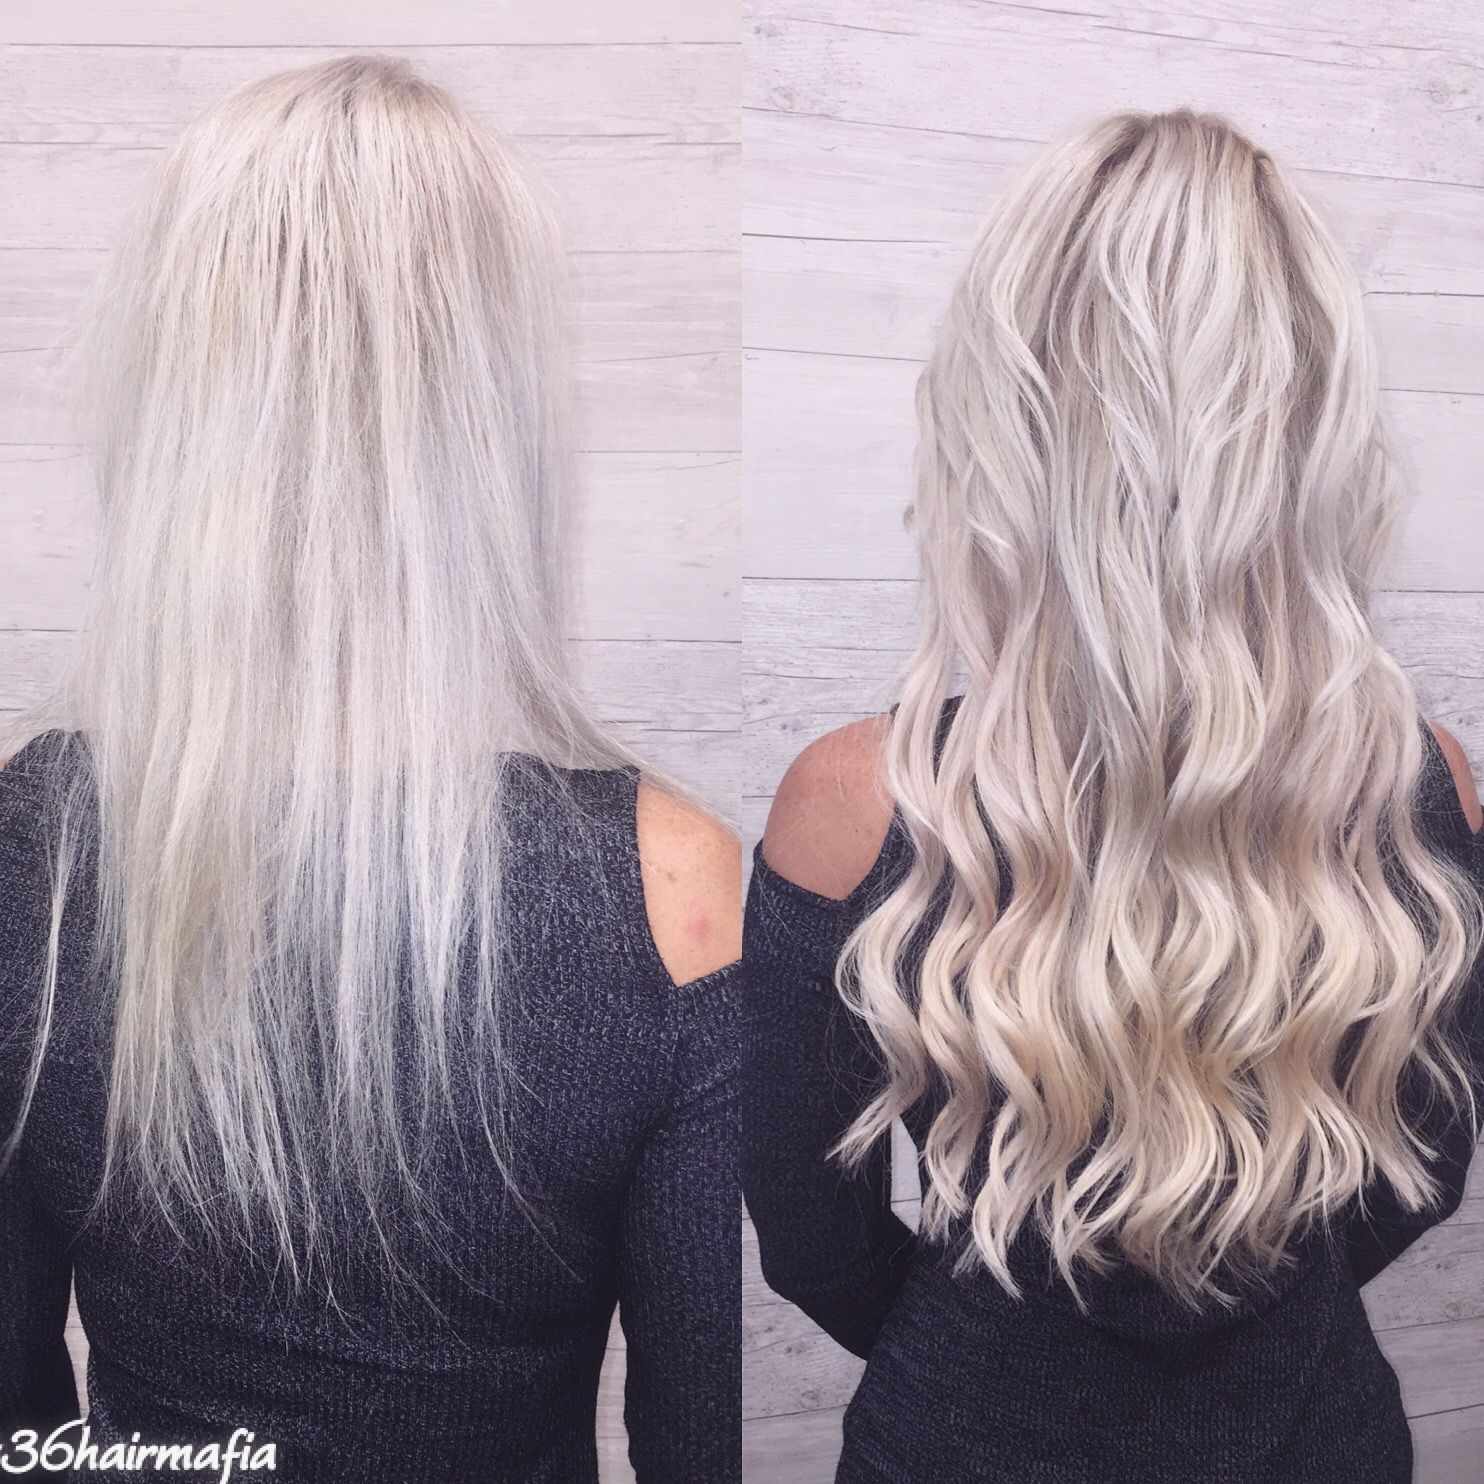 Icey blonde Great Lengths hair extensions the Best of the best